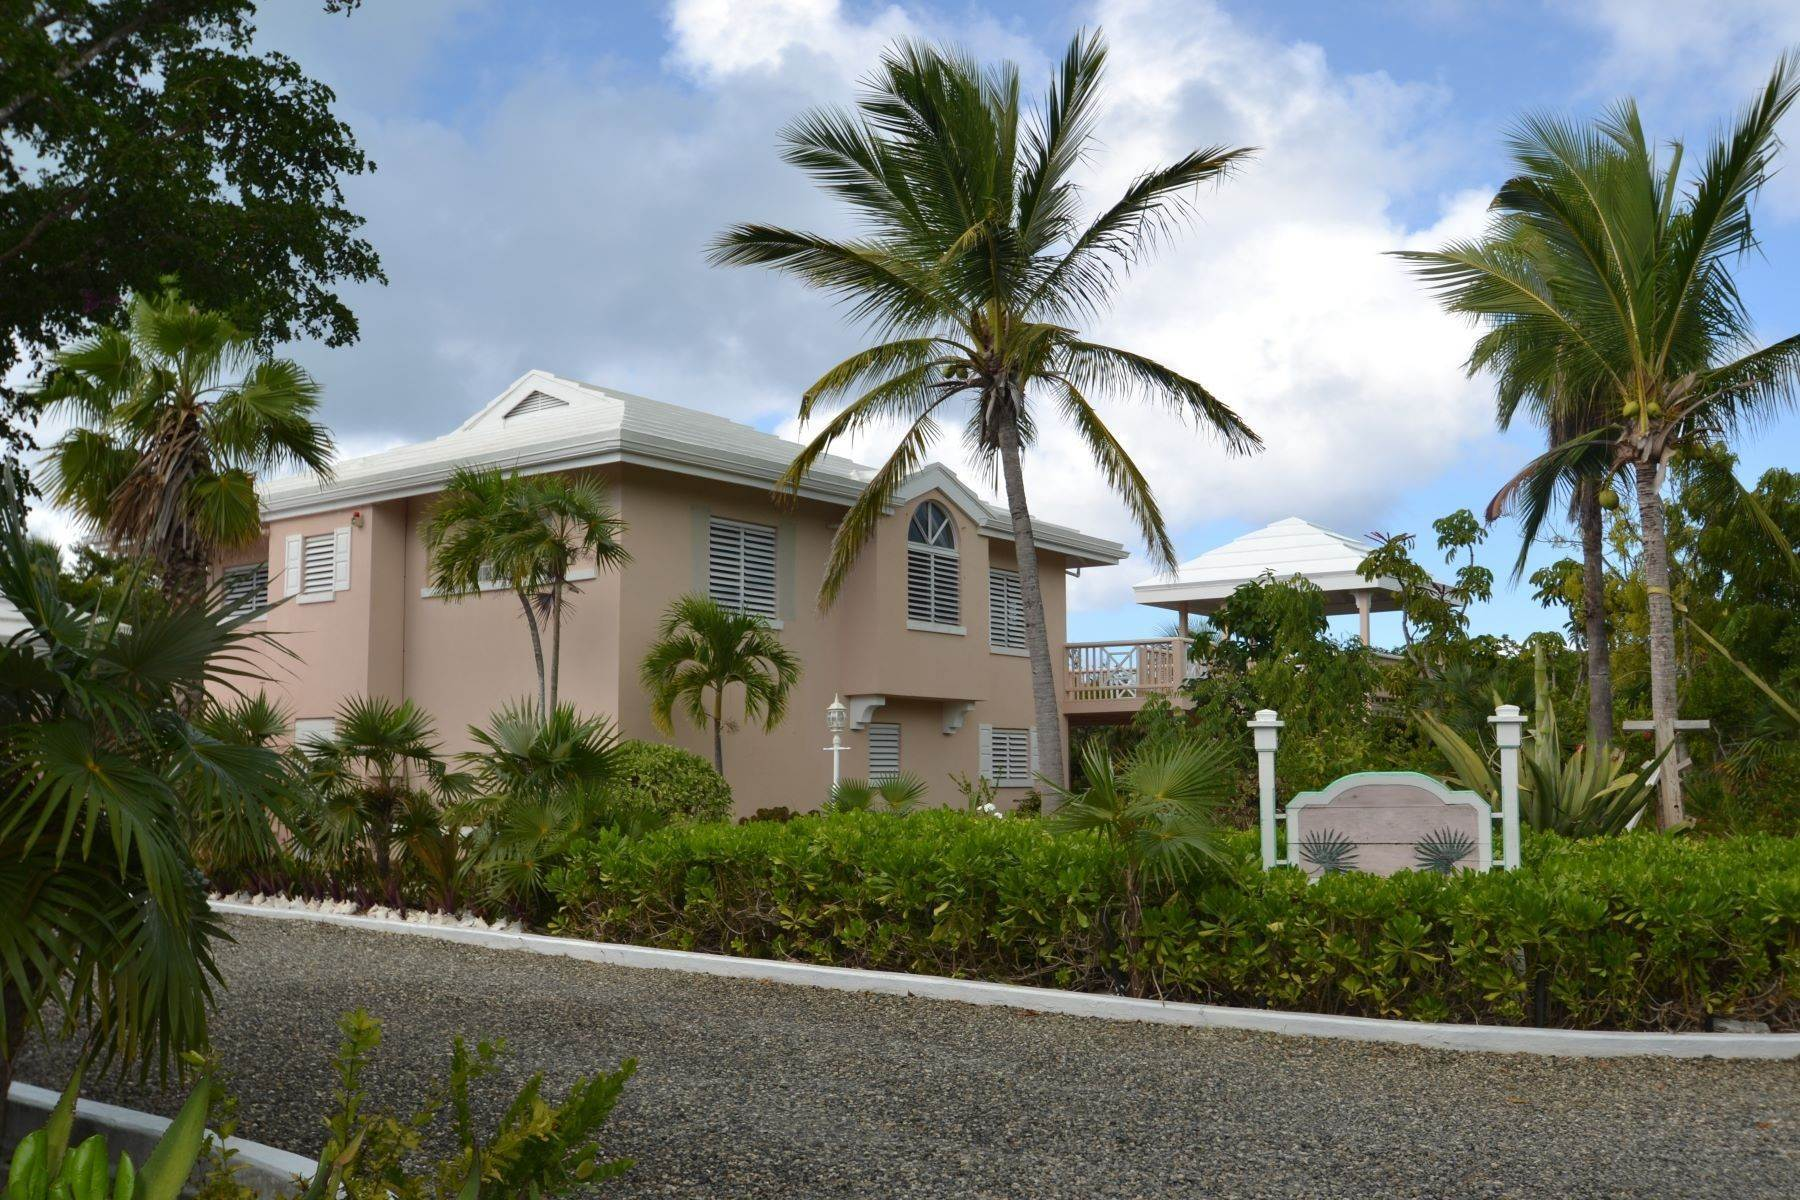 Single Family Homes for Sale at Palmetto Place Turtle Cove, Providenciales Turks And Caicos Islands